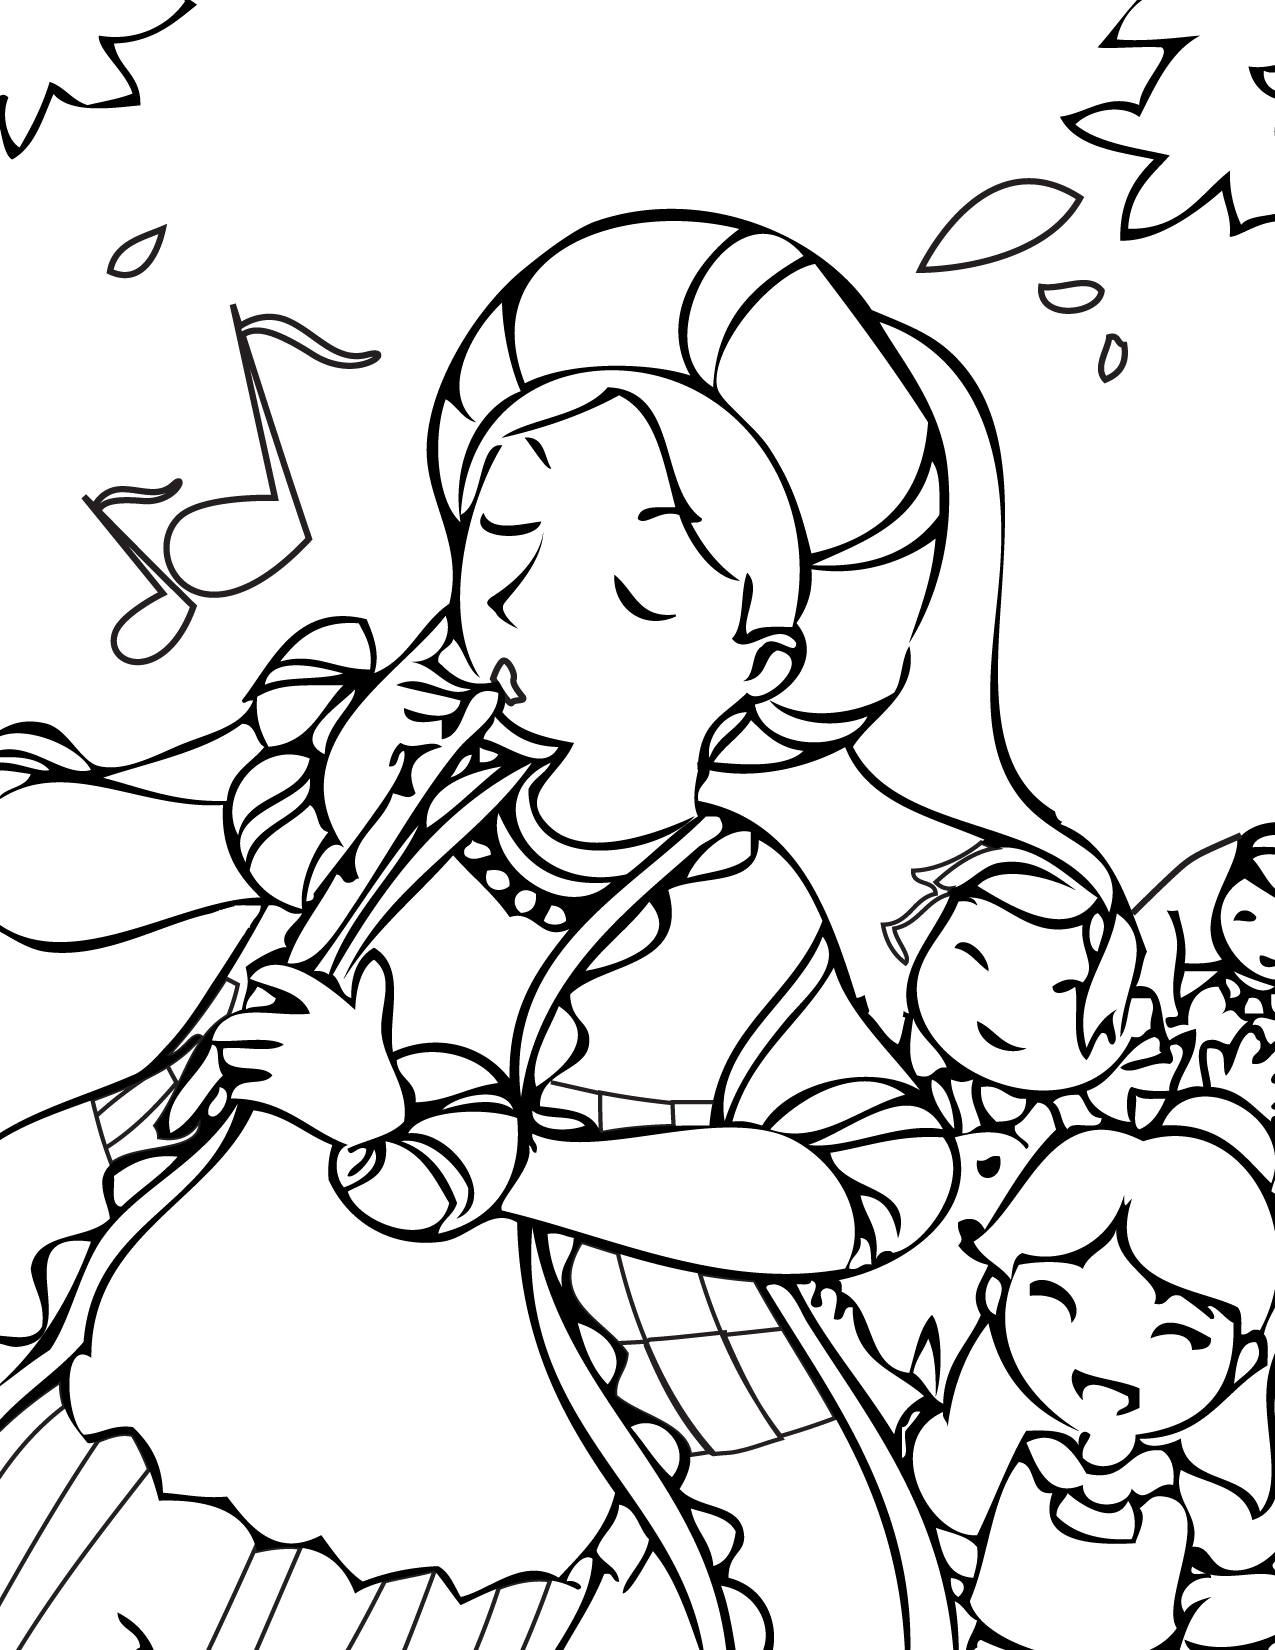 the pied piper coloring page handipoints